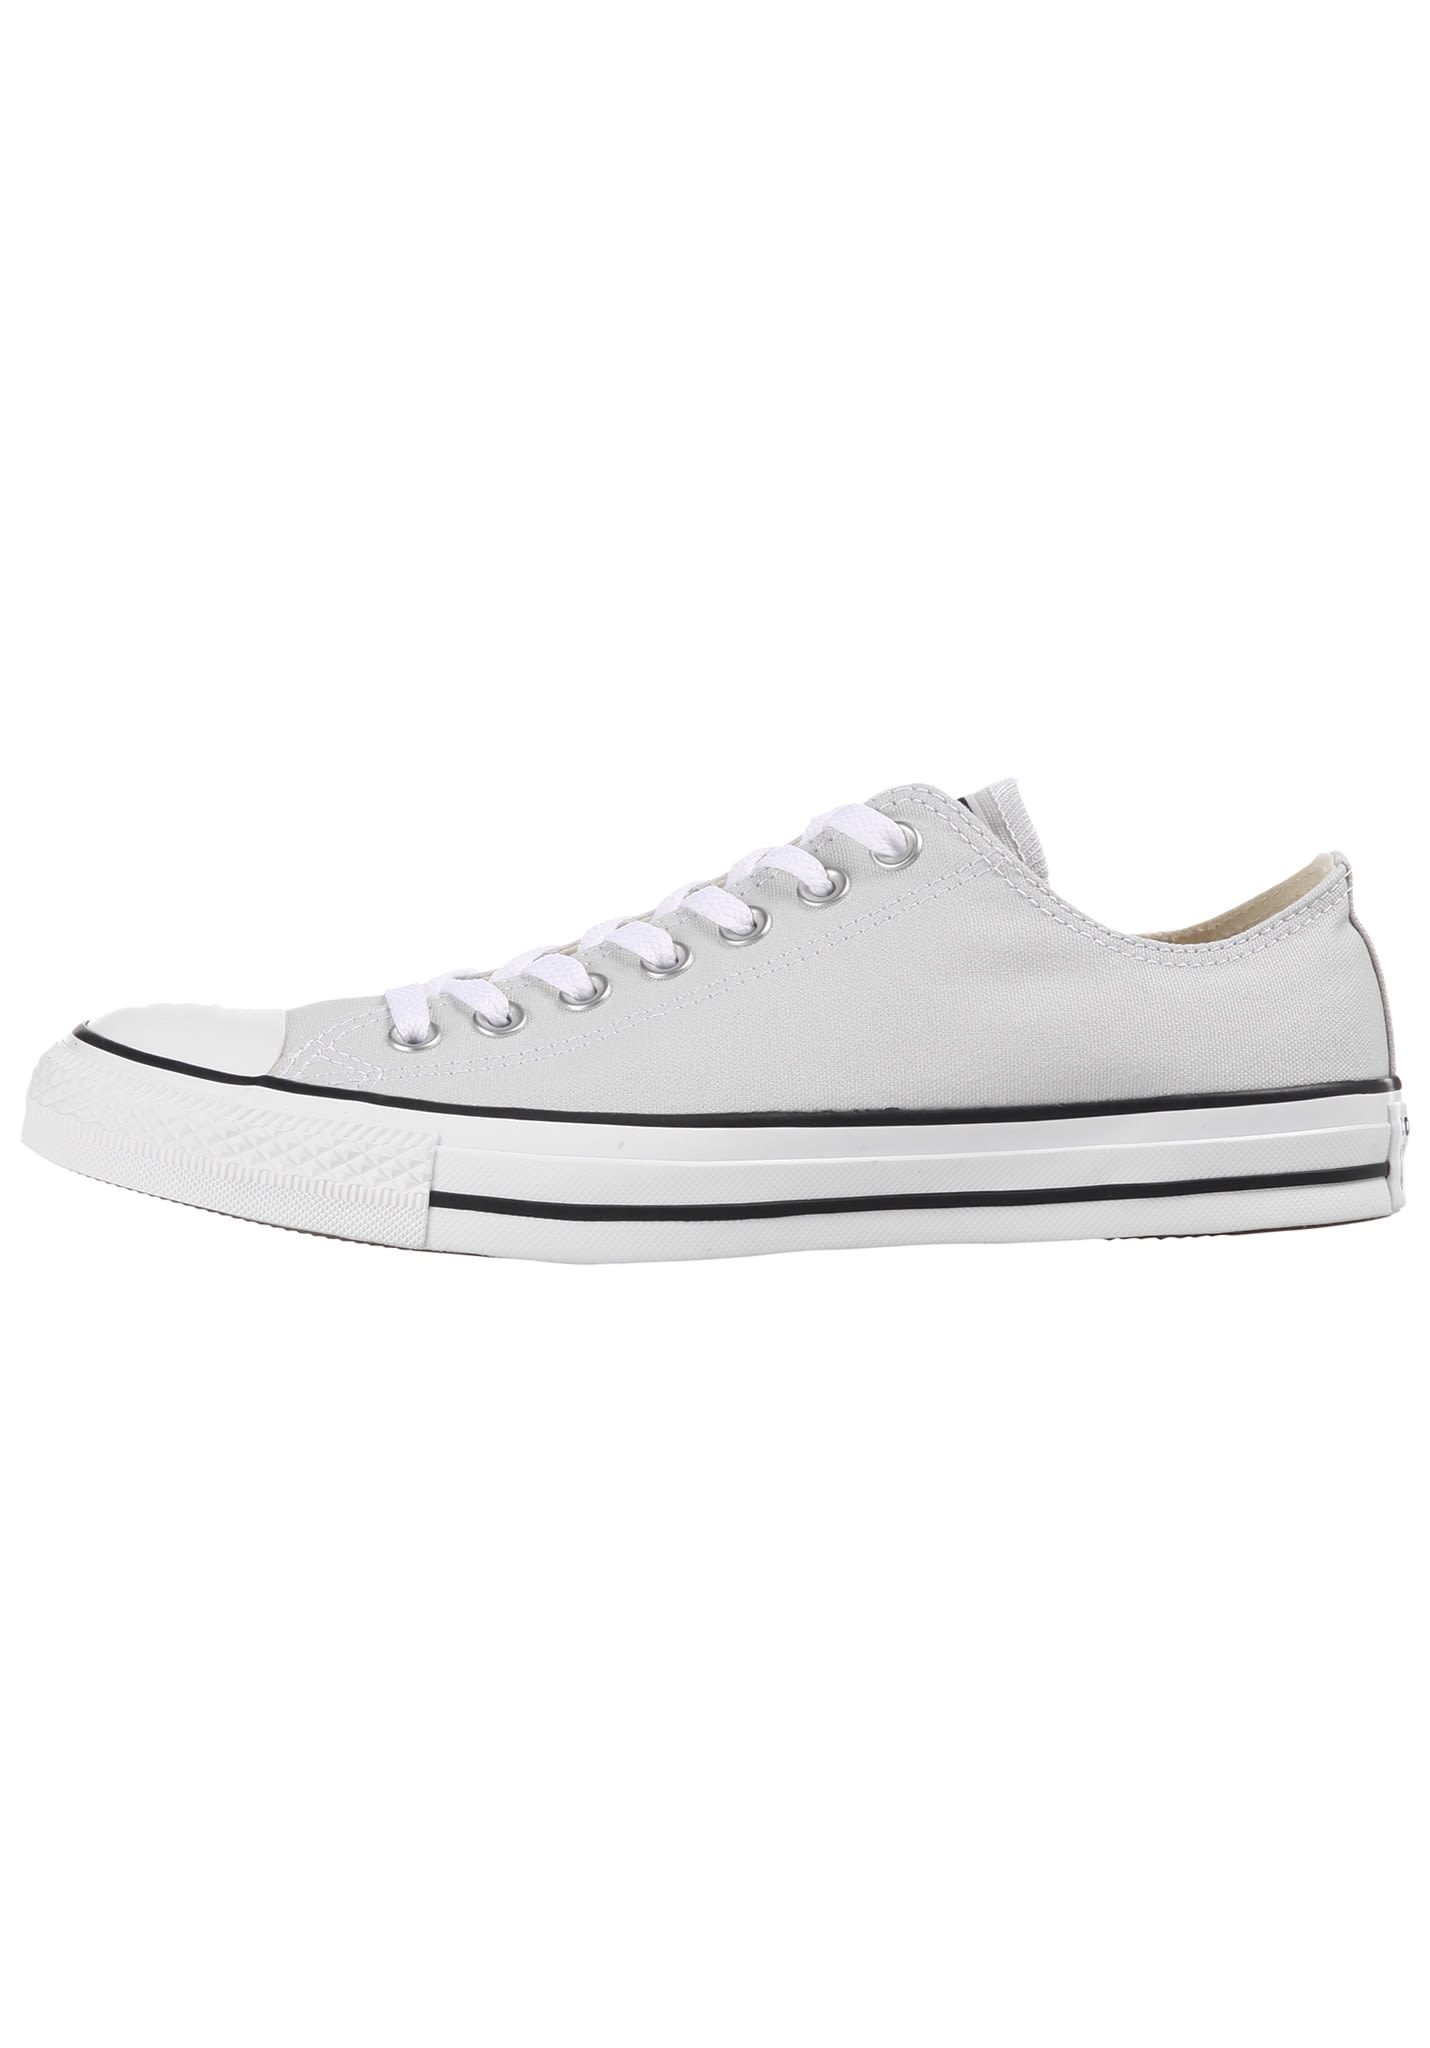 eac9c59b972 Converse Chuck Taylor All Star Ox Mouse - Sneakers - Grijs - Planet Sports